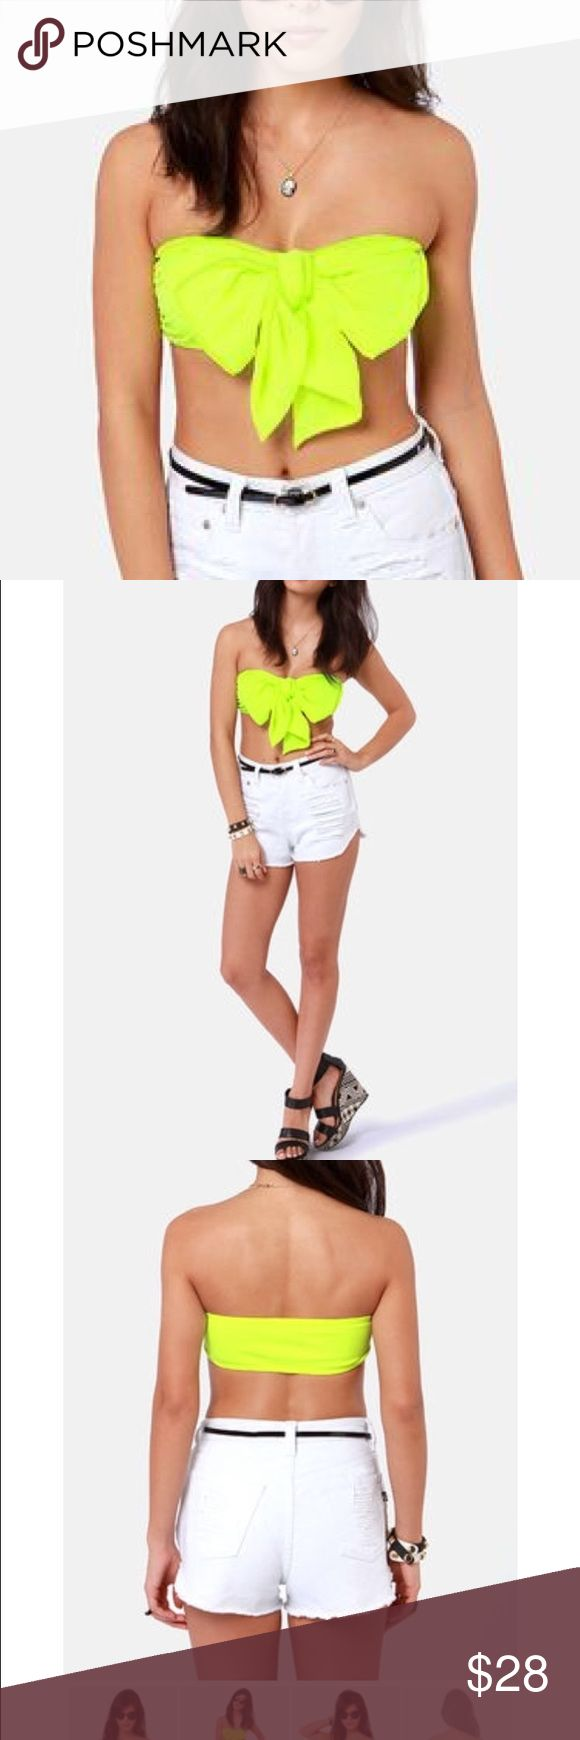 Neon yellow bow bandeau top Never worn. I also have a matching skater skirt for a super cute set! 😊 Tops